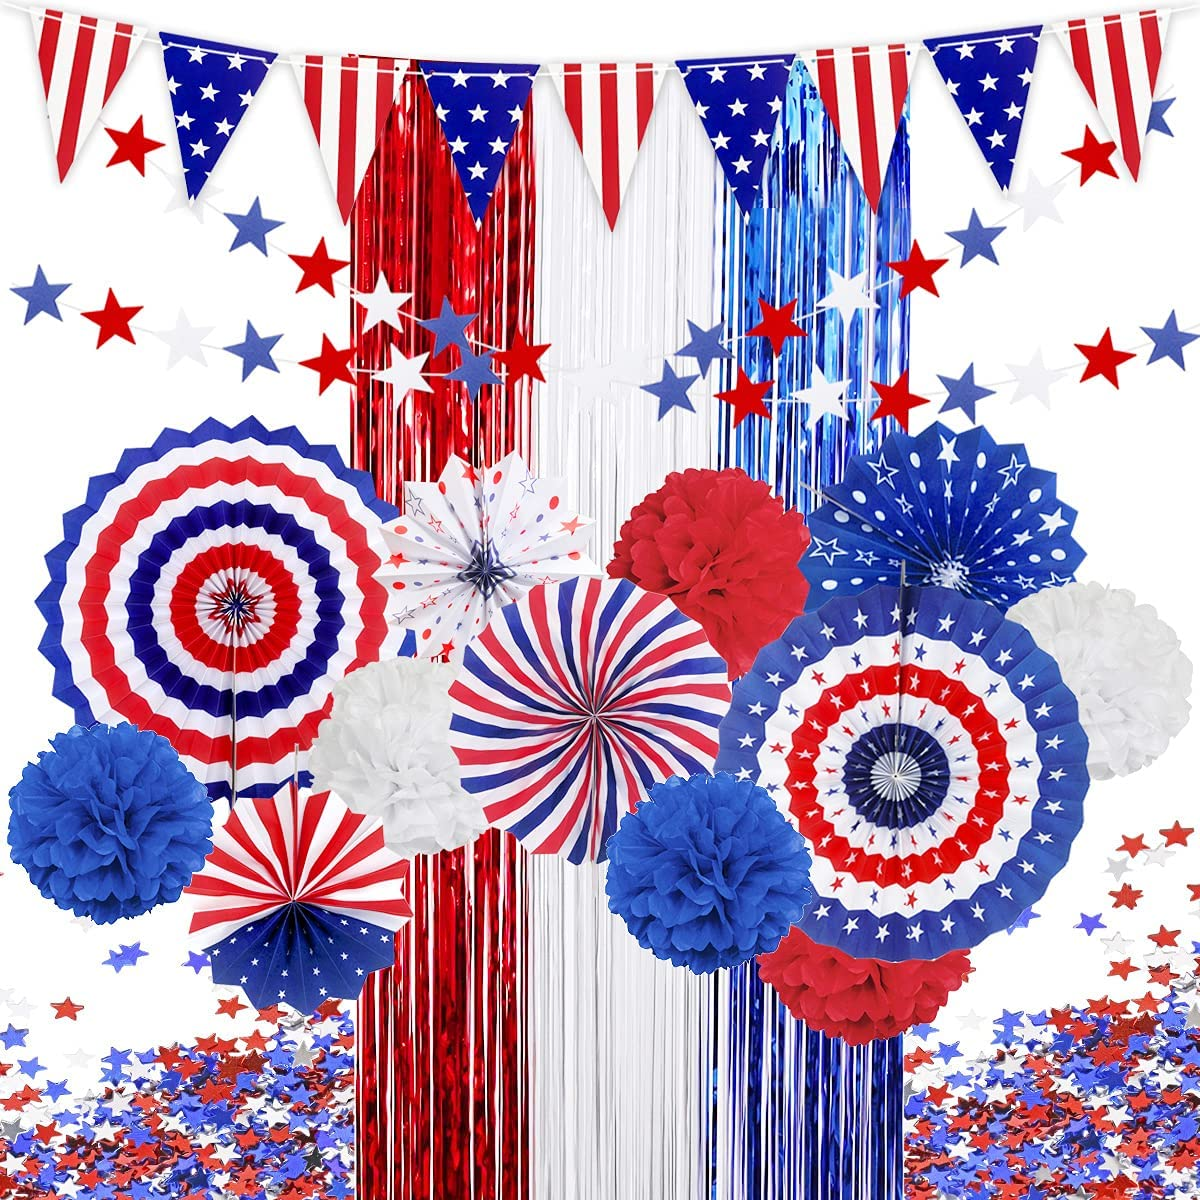 MOVINPE 4th of July Patriotic Party Decorations Set, American Flag Hanging Paper Fans, Pompoms Flowers, Foil Fringe Curtain, Star Streamers, USA Pennant Bunting Independence Day Party Supplies